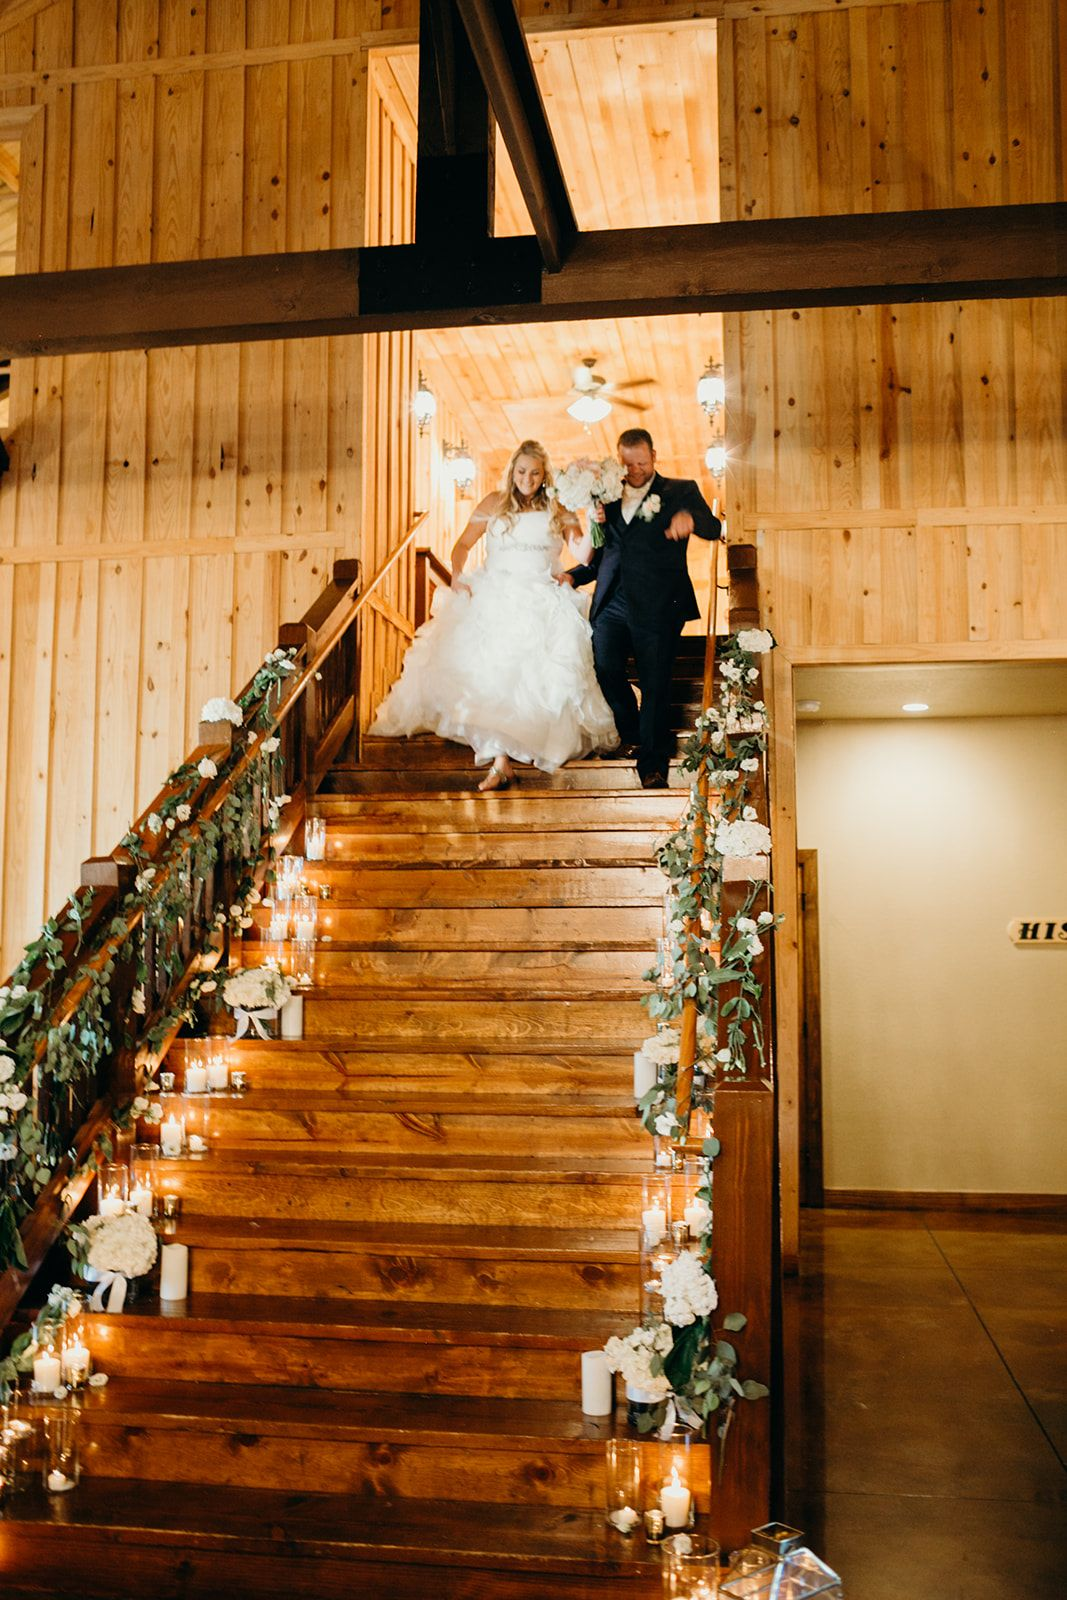 Elegant Wedding Reception Entrance Elegant Wedding Reception Staircase Decor With Candles Gre Oklahoma Wedding Venues Tulsa Wedding Venues Wedding Venues